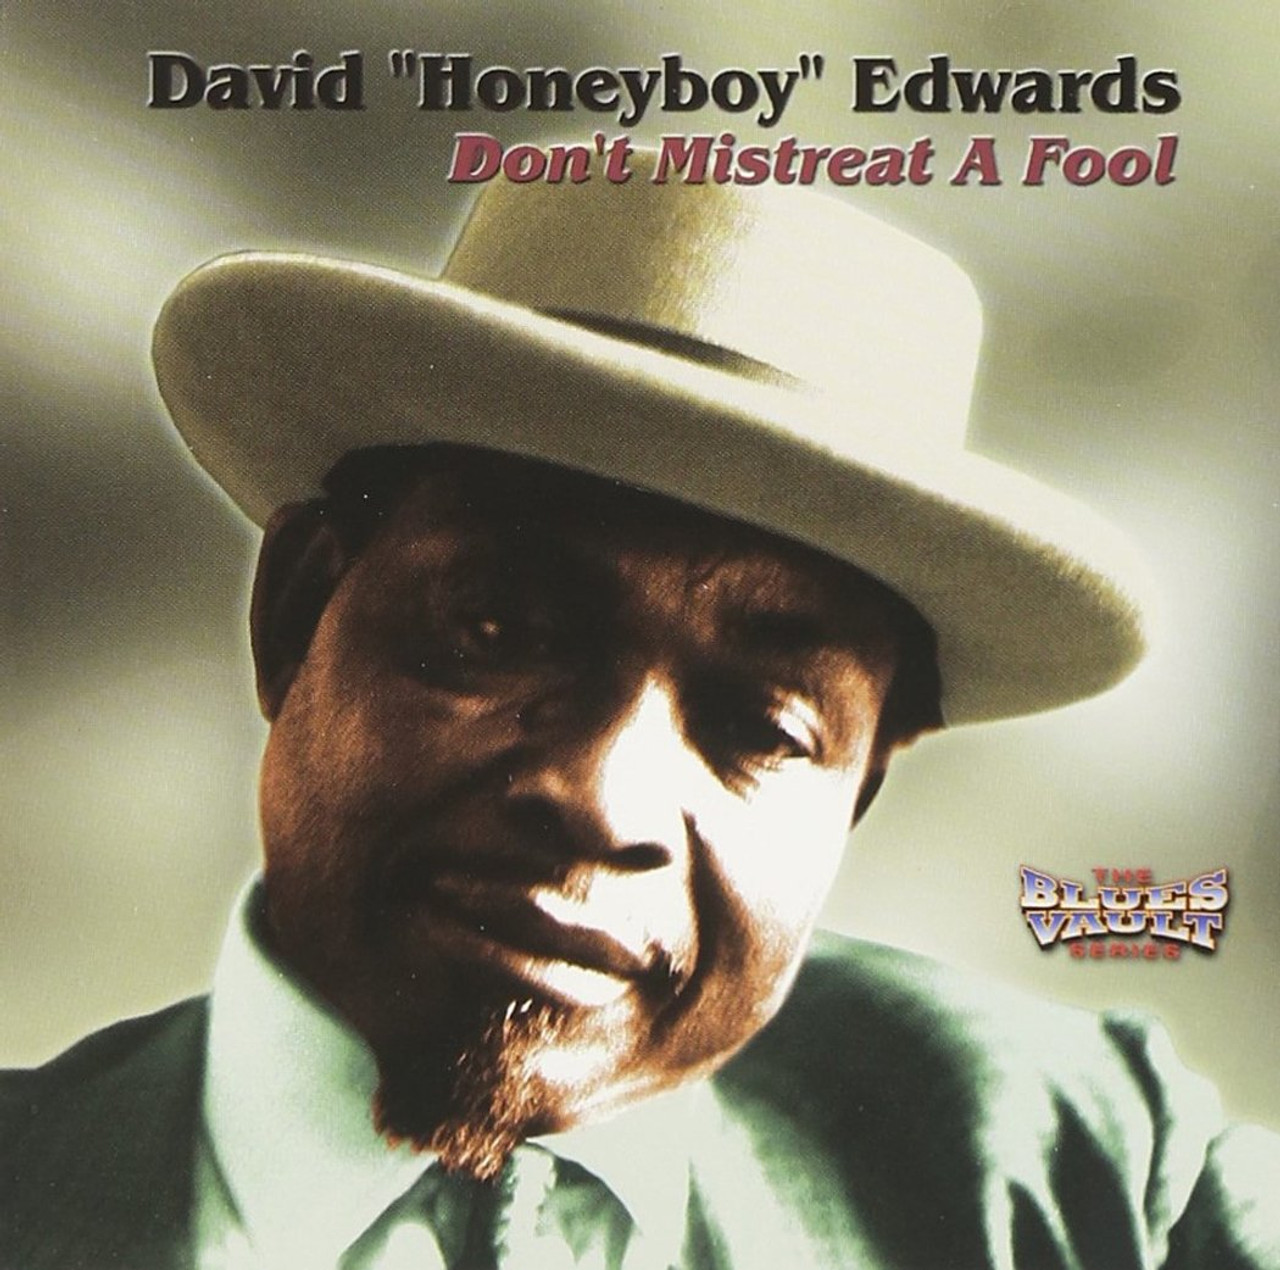 David Honeyboy Edwards - Don't Mistreat A Fool